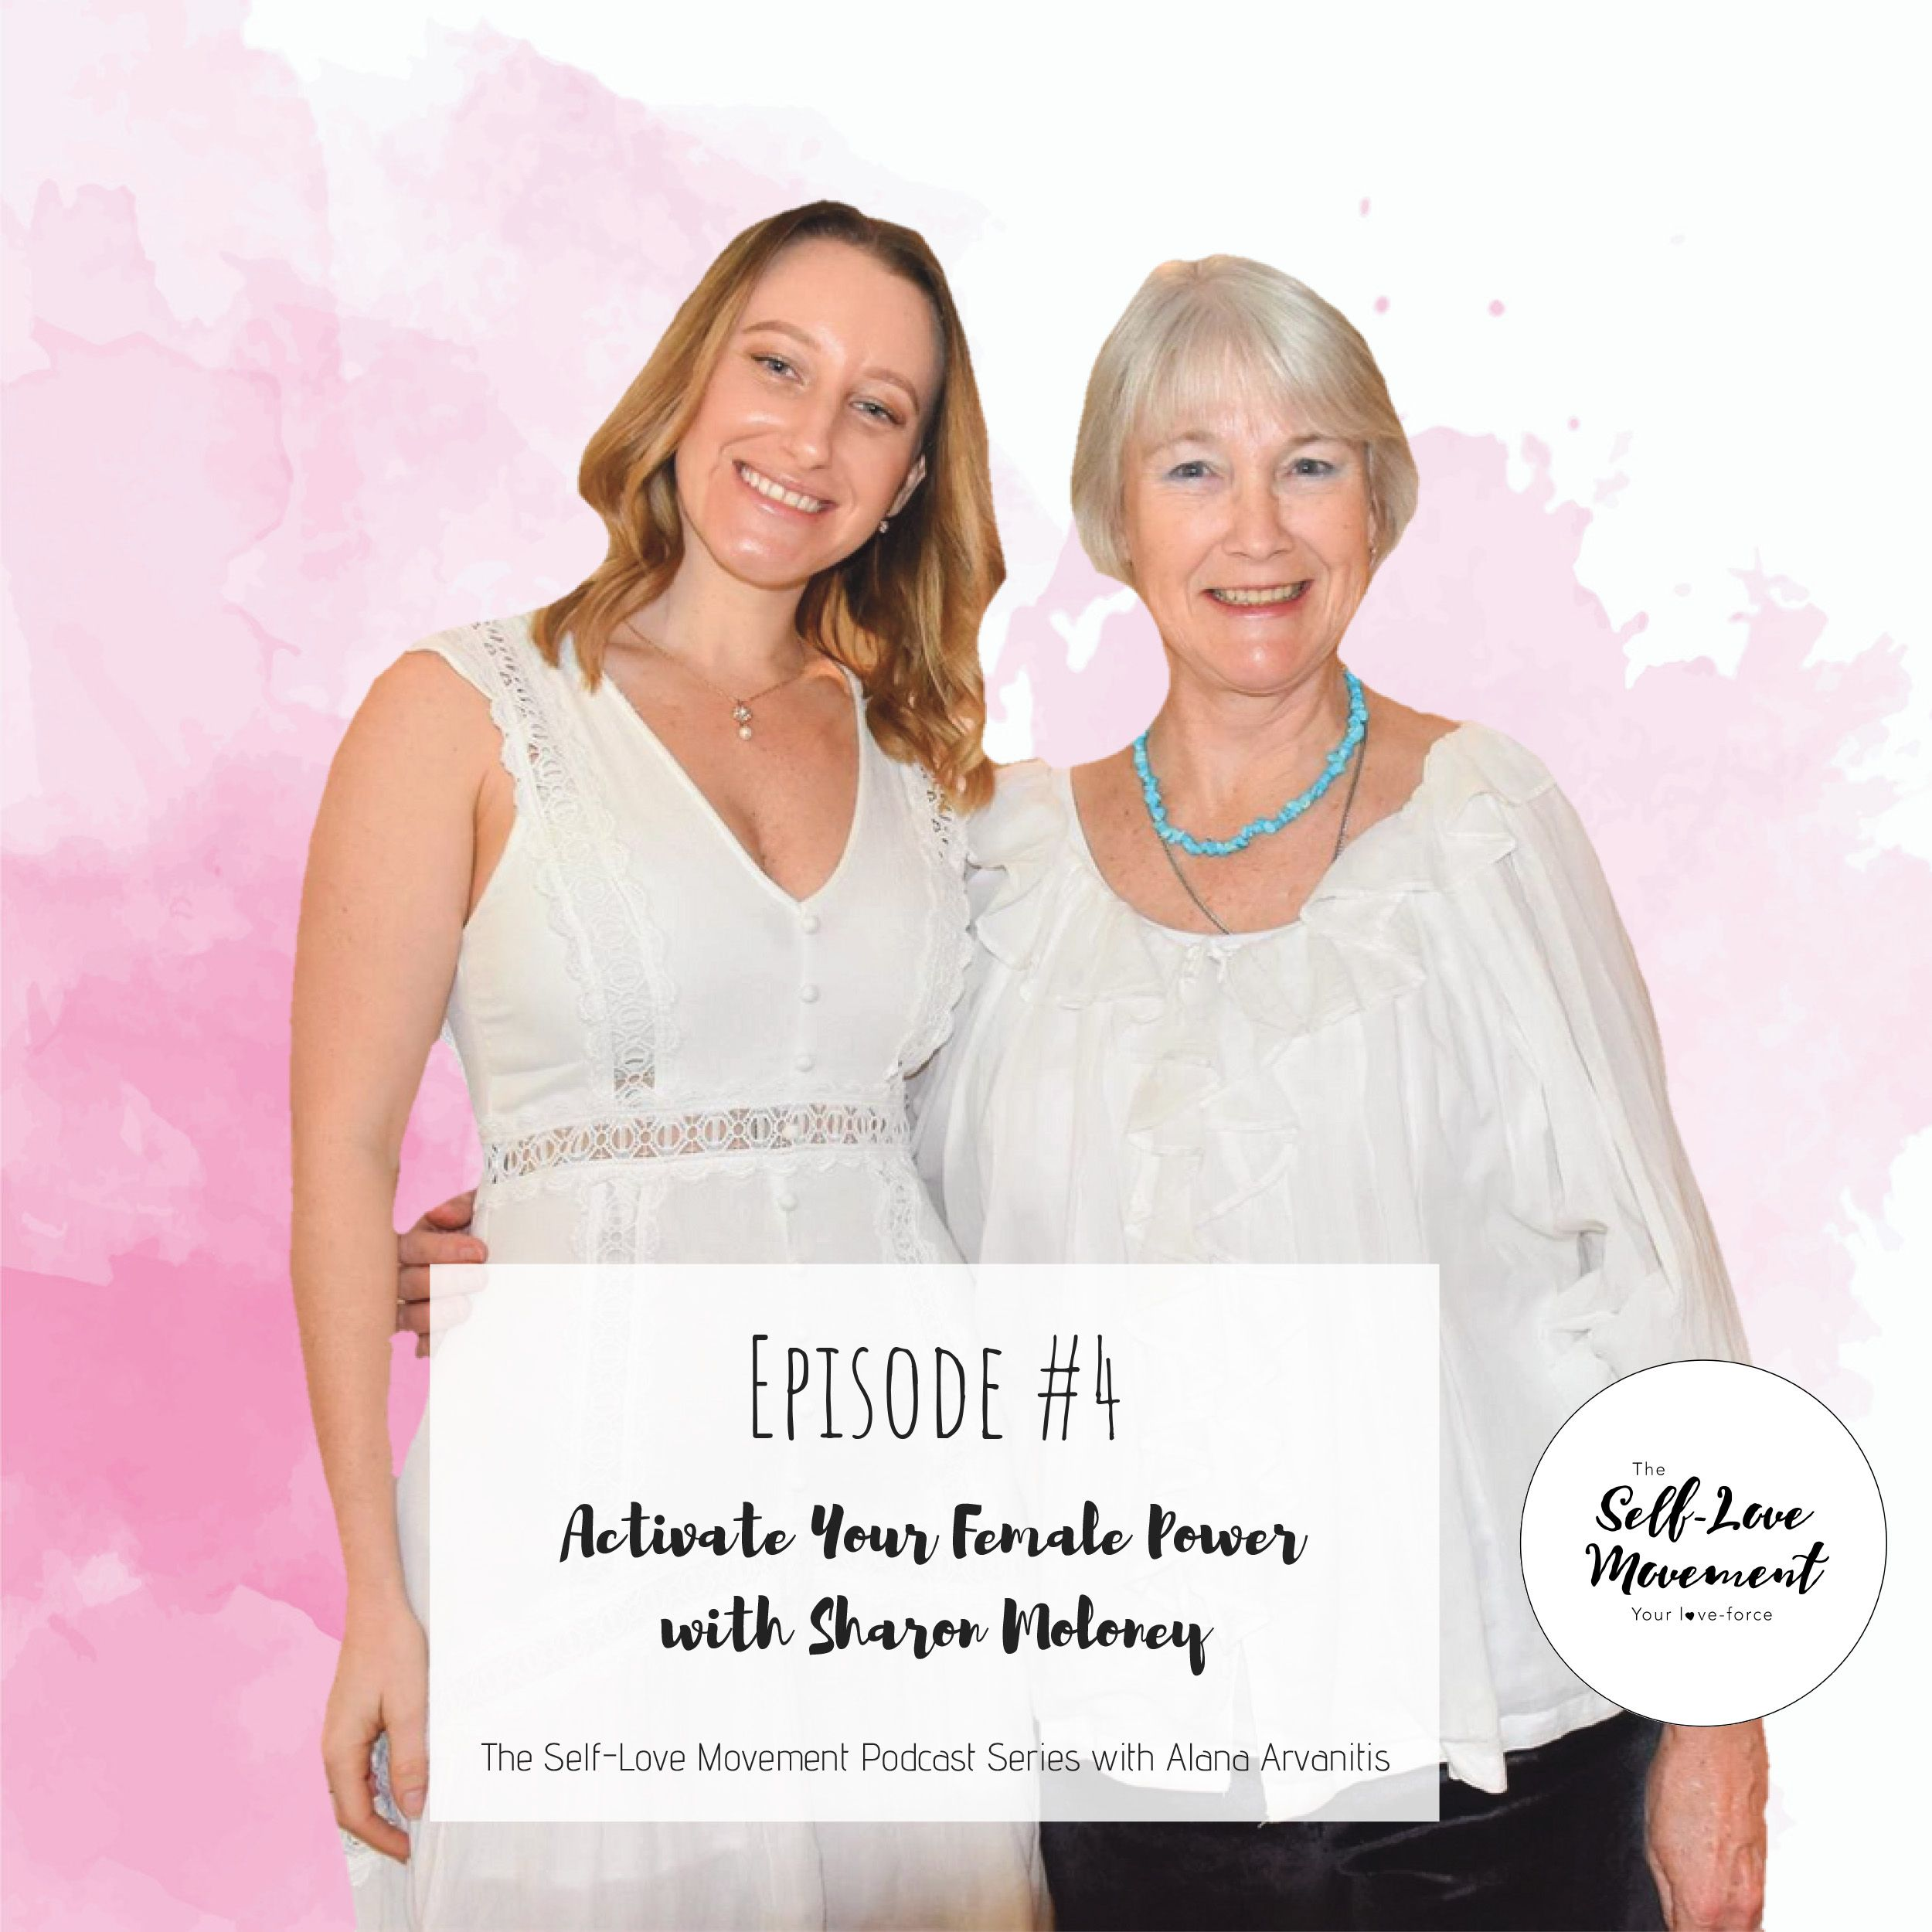 Episode #4 Activate Your Female Power With Dr Sharon Moloney